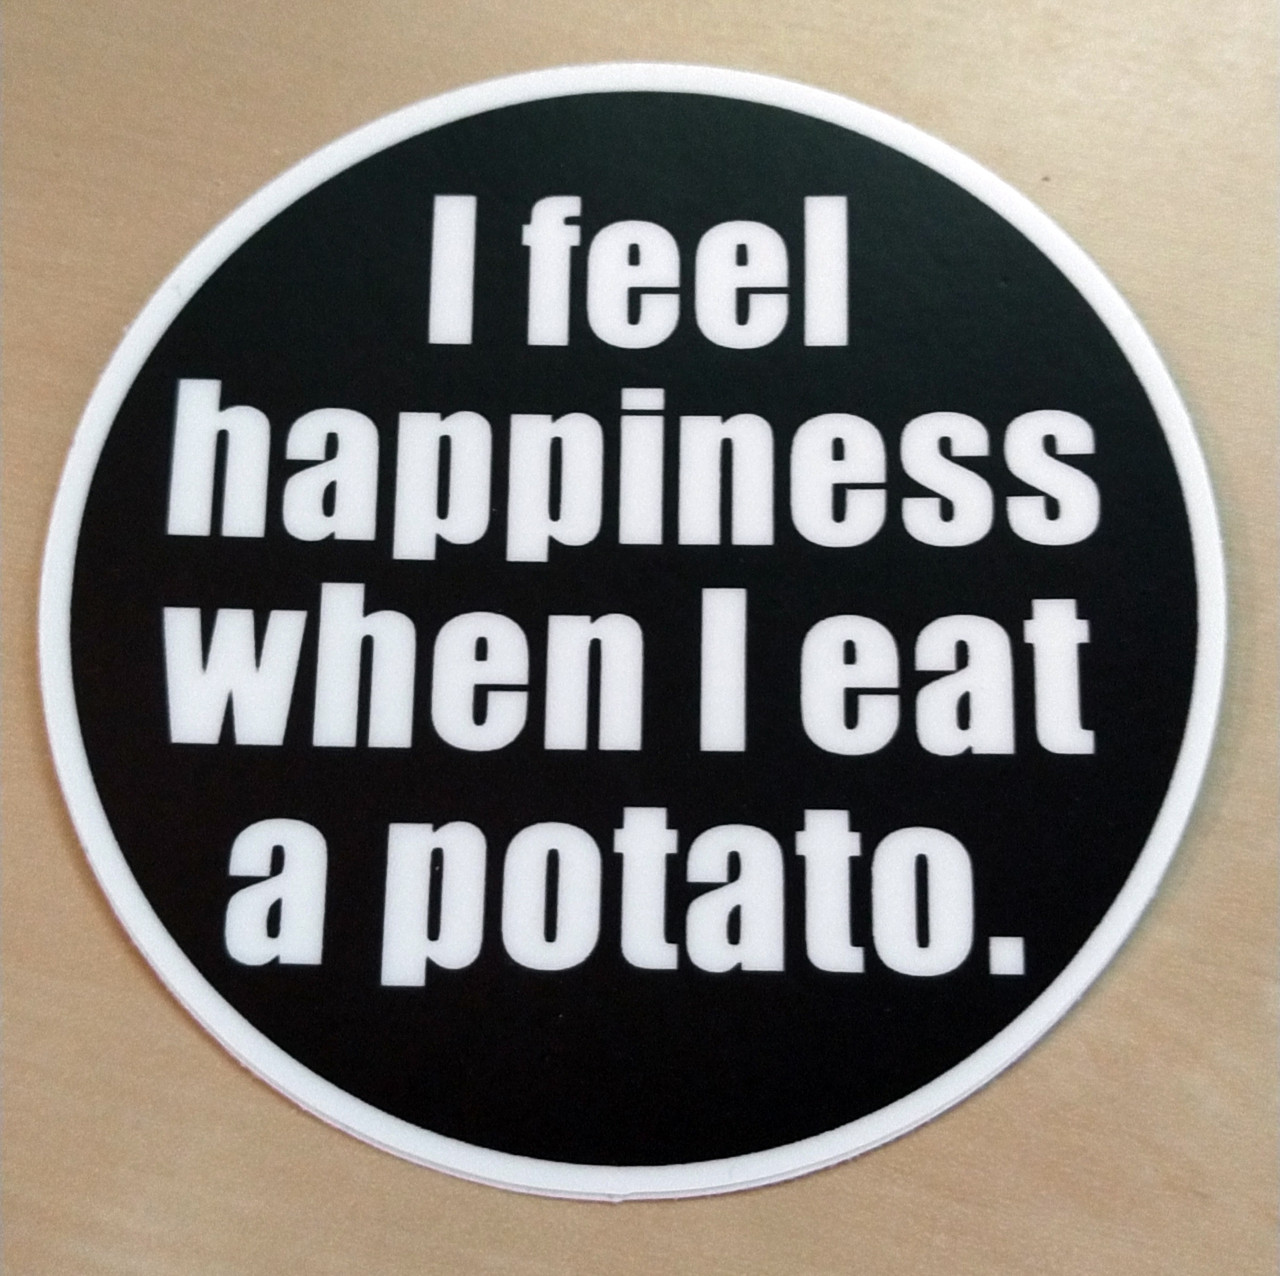 """Set of 5 I Feel Happiness When I Eat a Potato 3"""" Vinyl Decal Stickers -5-pack"""